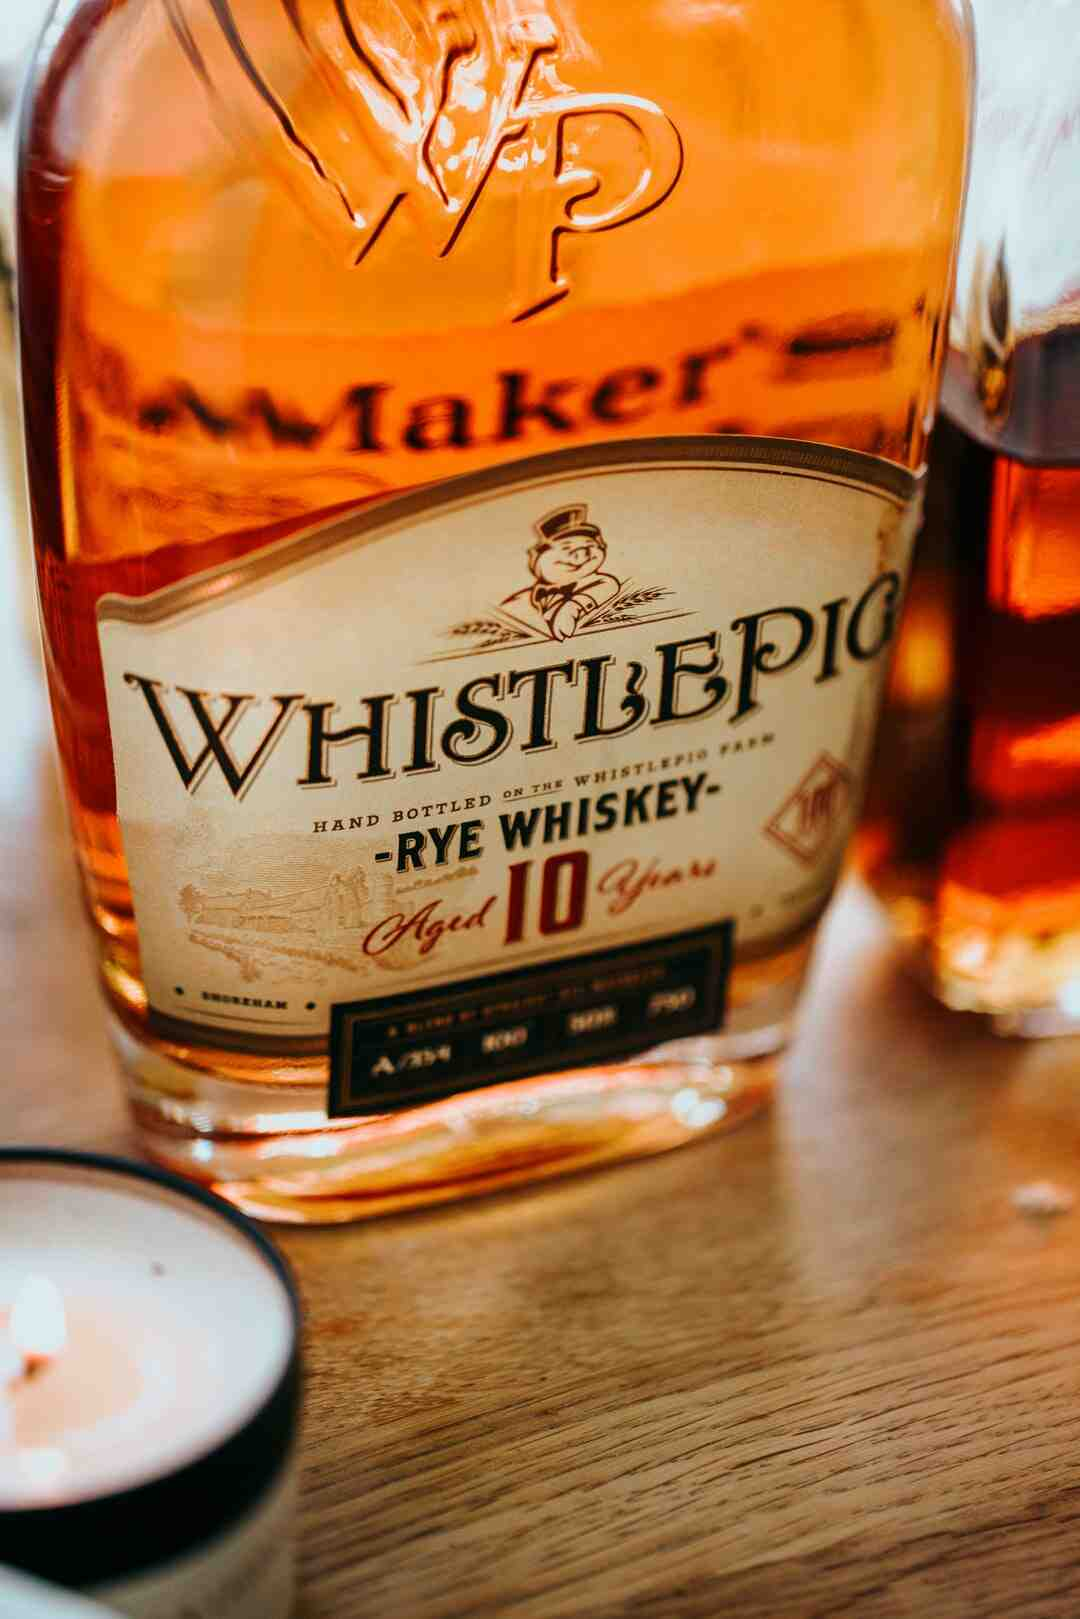 Is Whiskey good for weight loss?